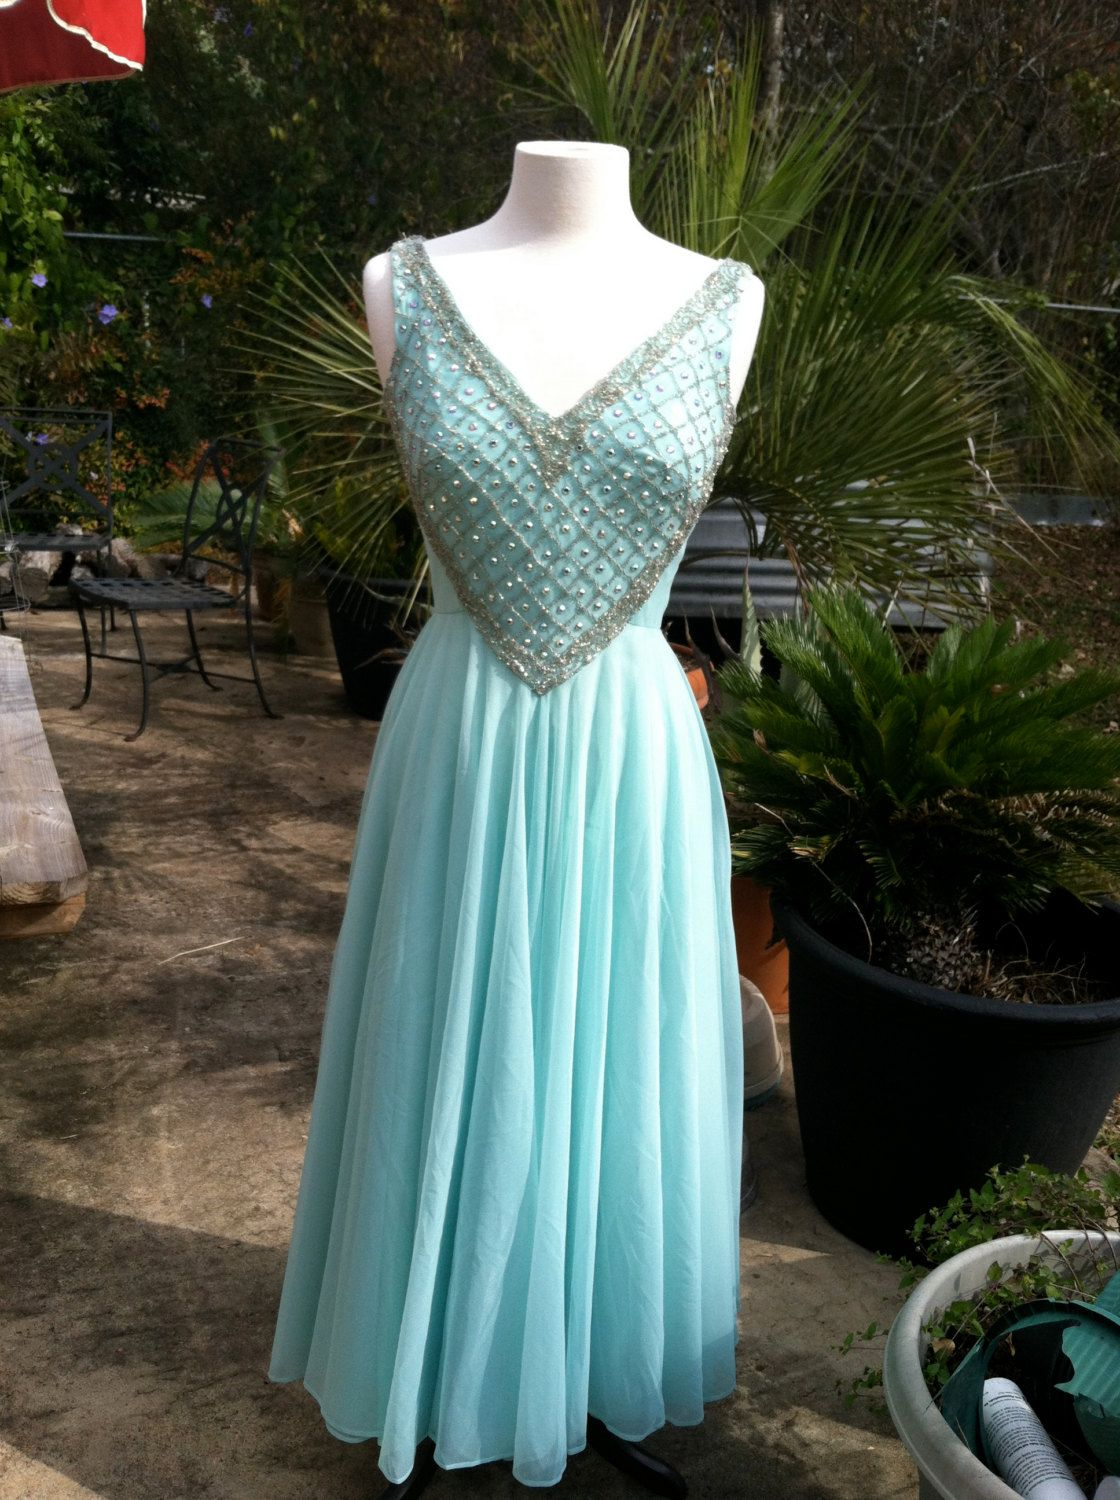 Pin by Madeline LeBlanc on My Style | Baby blue wedding ...